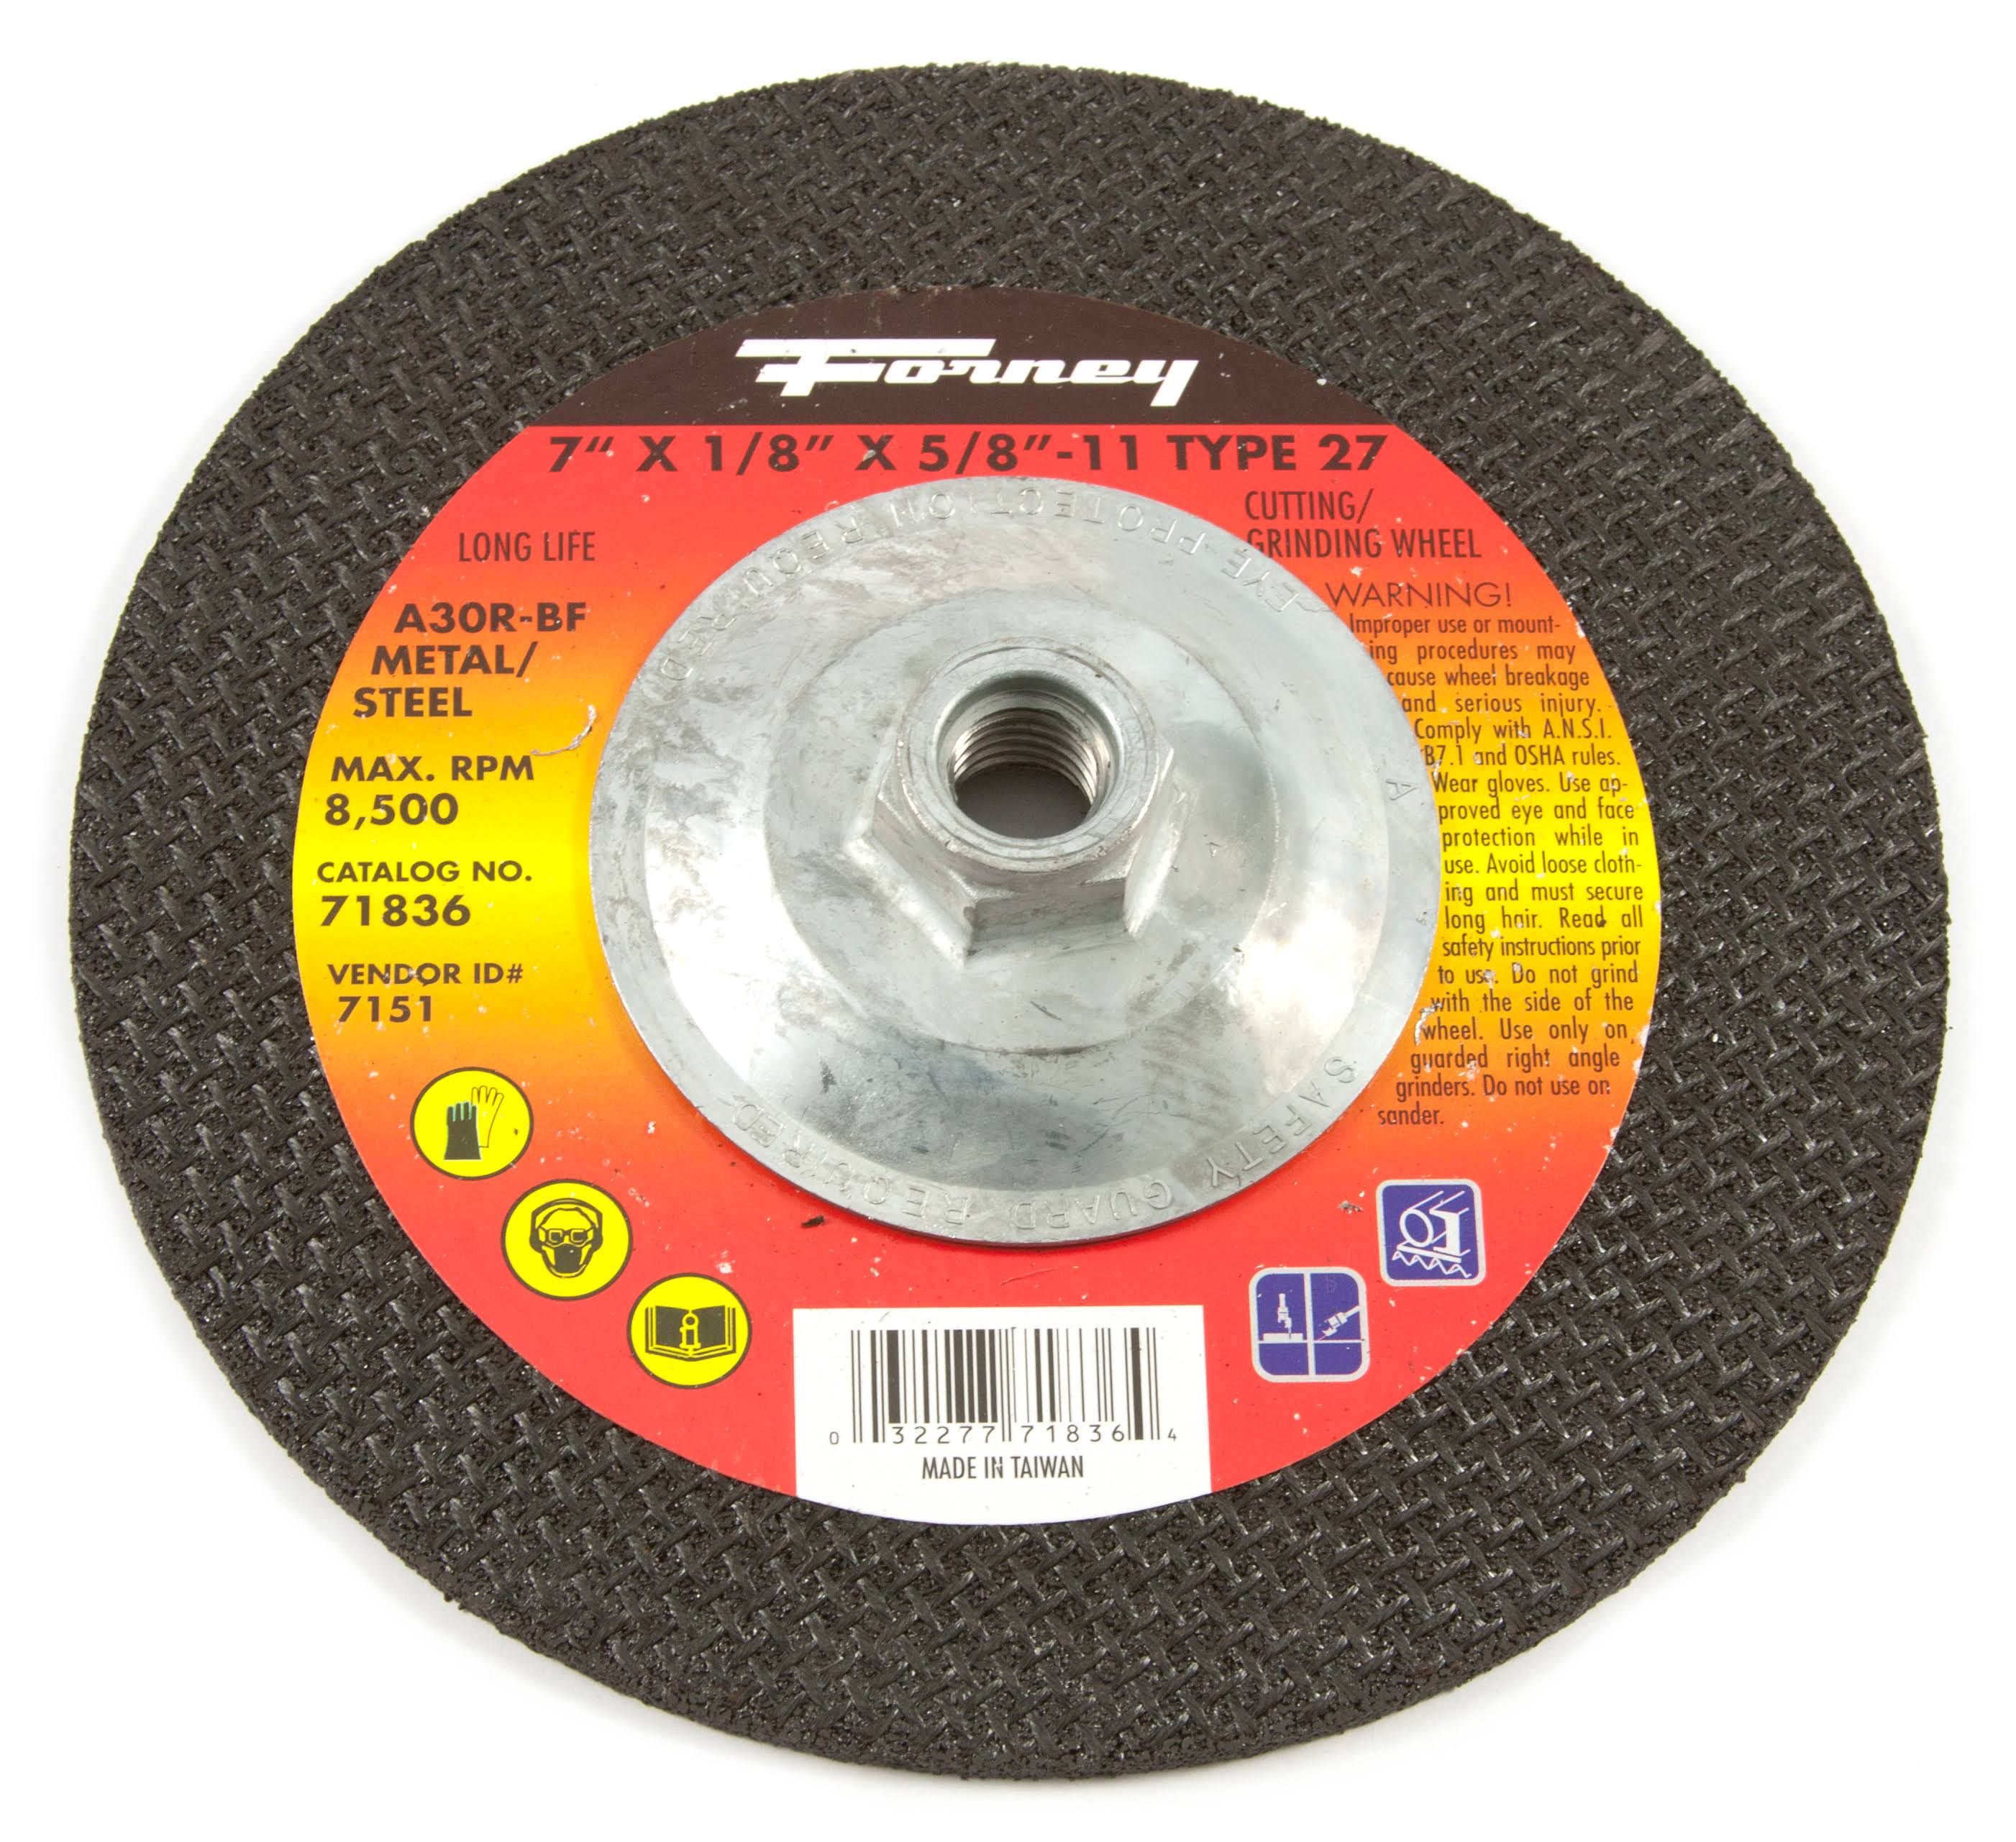 "Forney Grinding Wheel - Type 27, 7"" x 1/8"" x 5/8-11"""